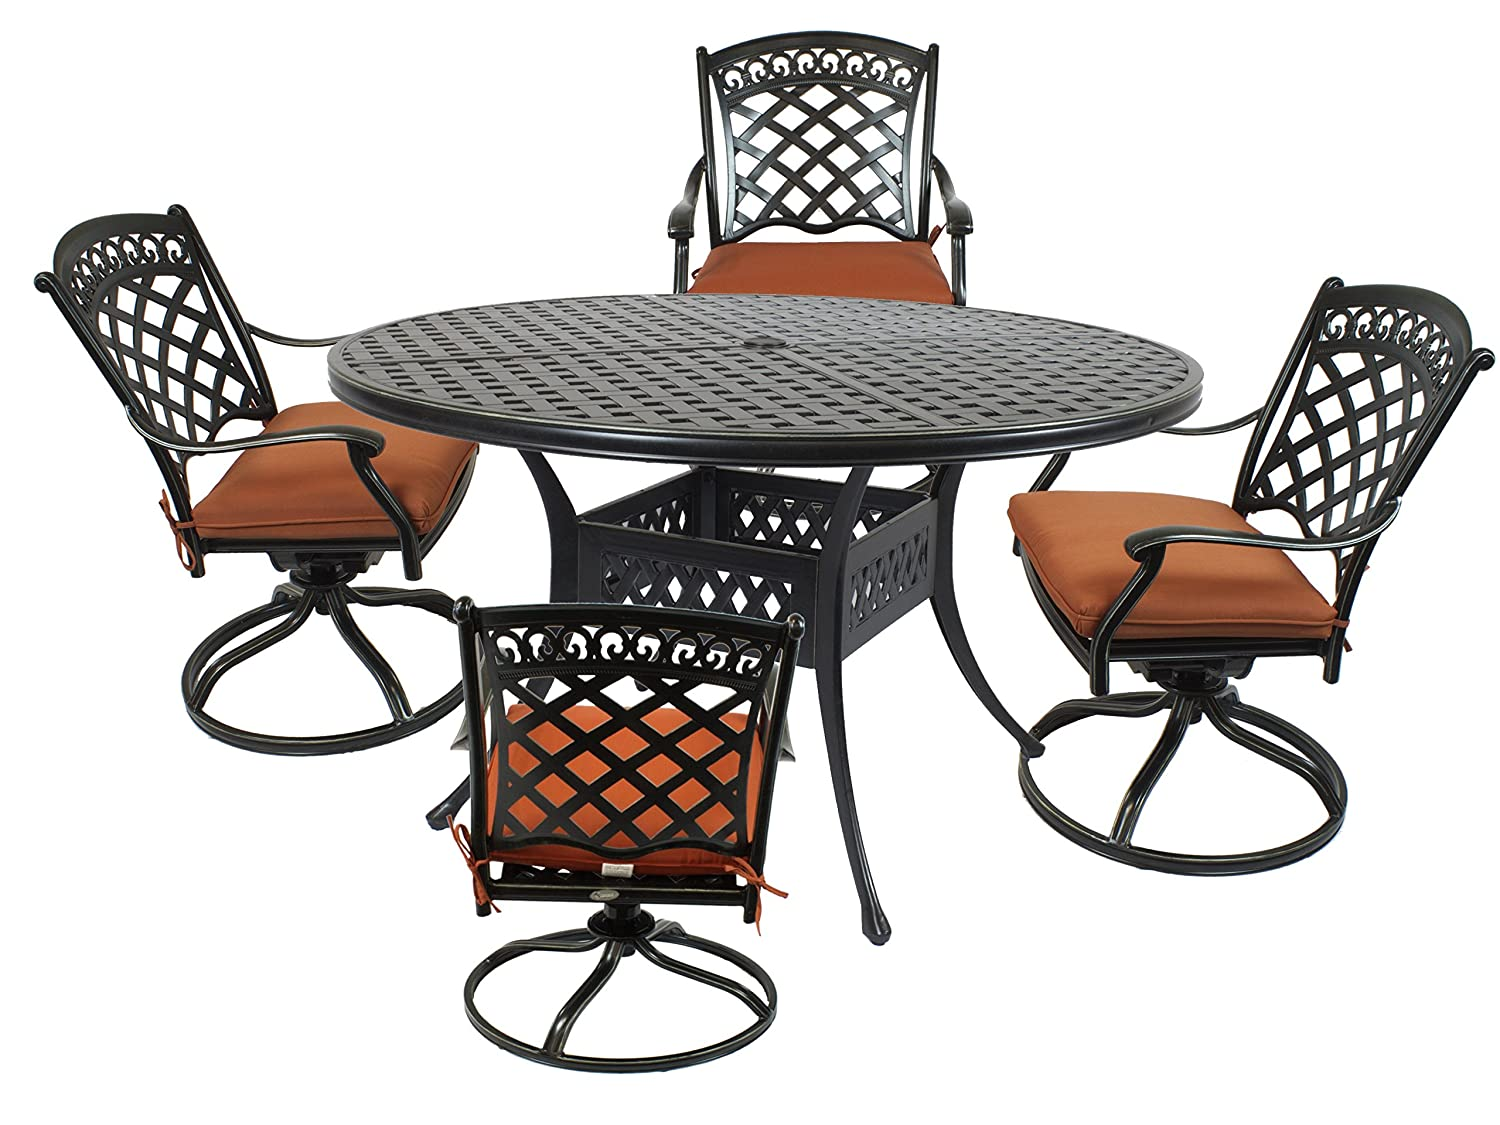 52 Round Table.St Tropez 5 Piece Cast Aluminum Dining Set With 52 Round Table 4 Swivel Rockers And Seat Cushions